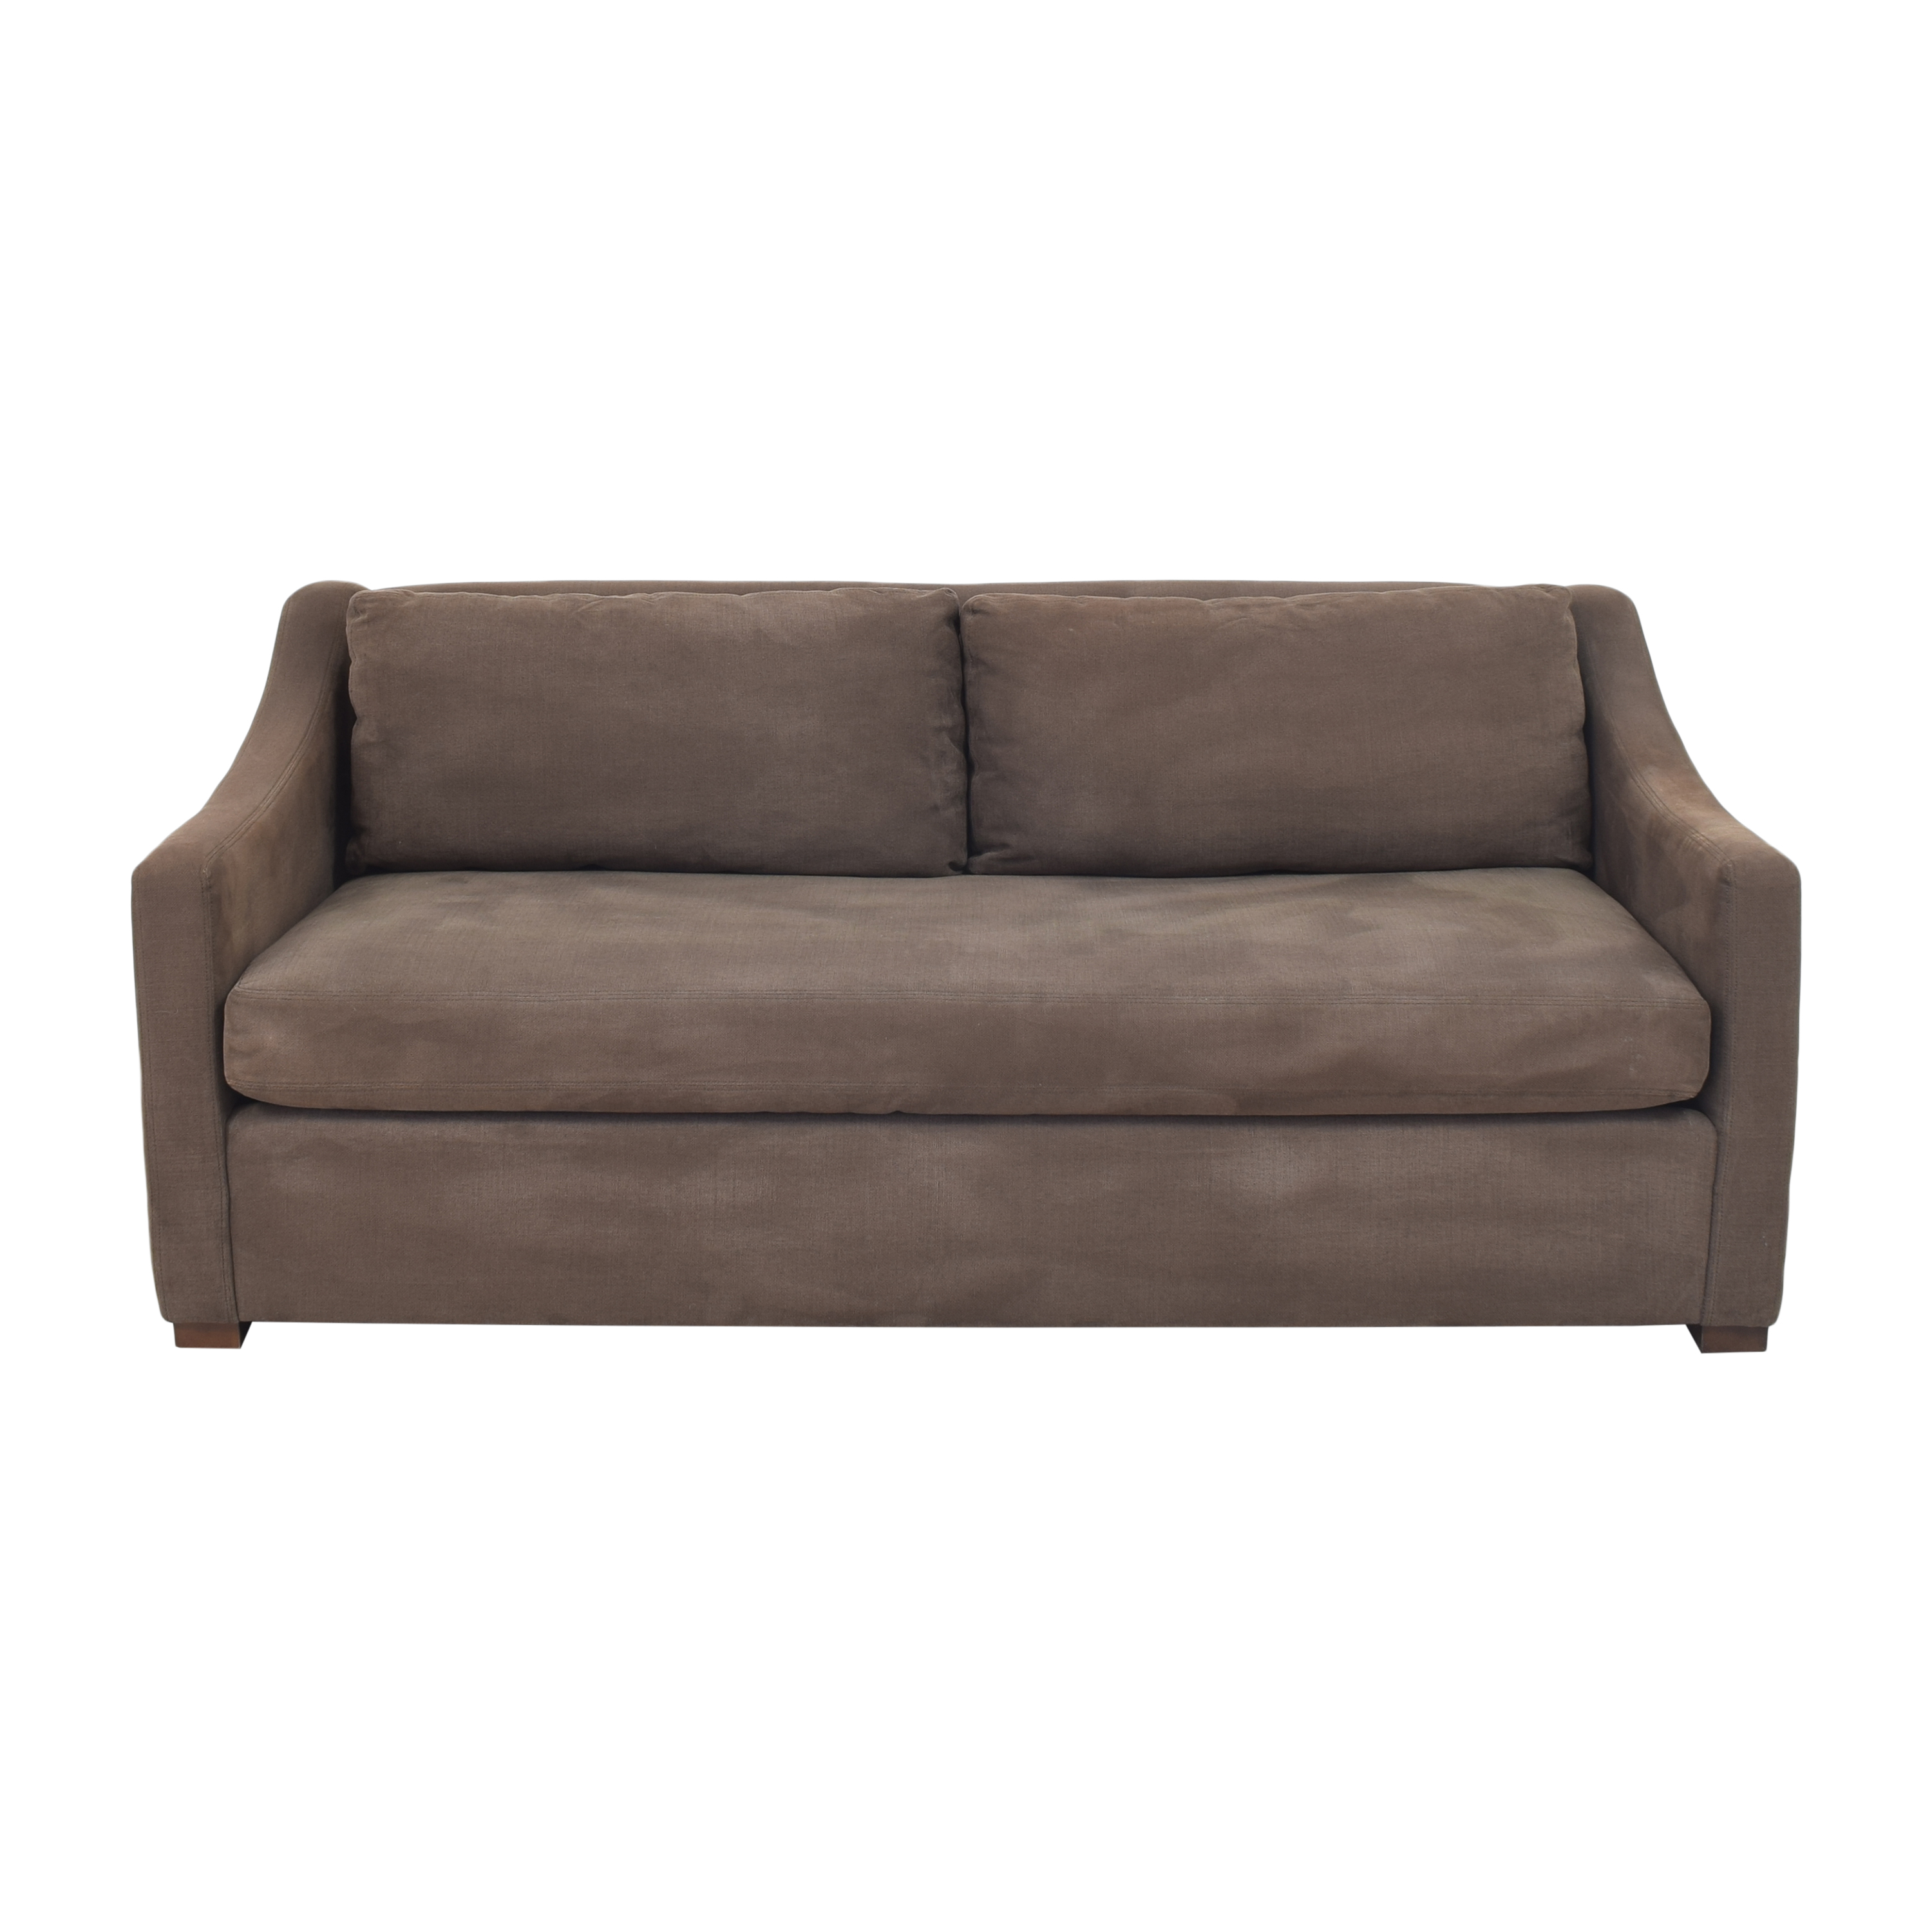 buy Restoration Hardware Belgian Classic Slope Arm Sofa Restoration Hardware